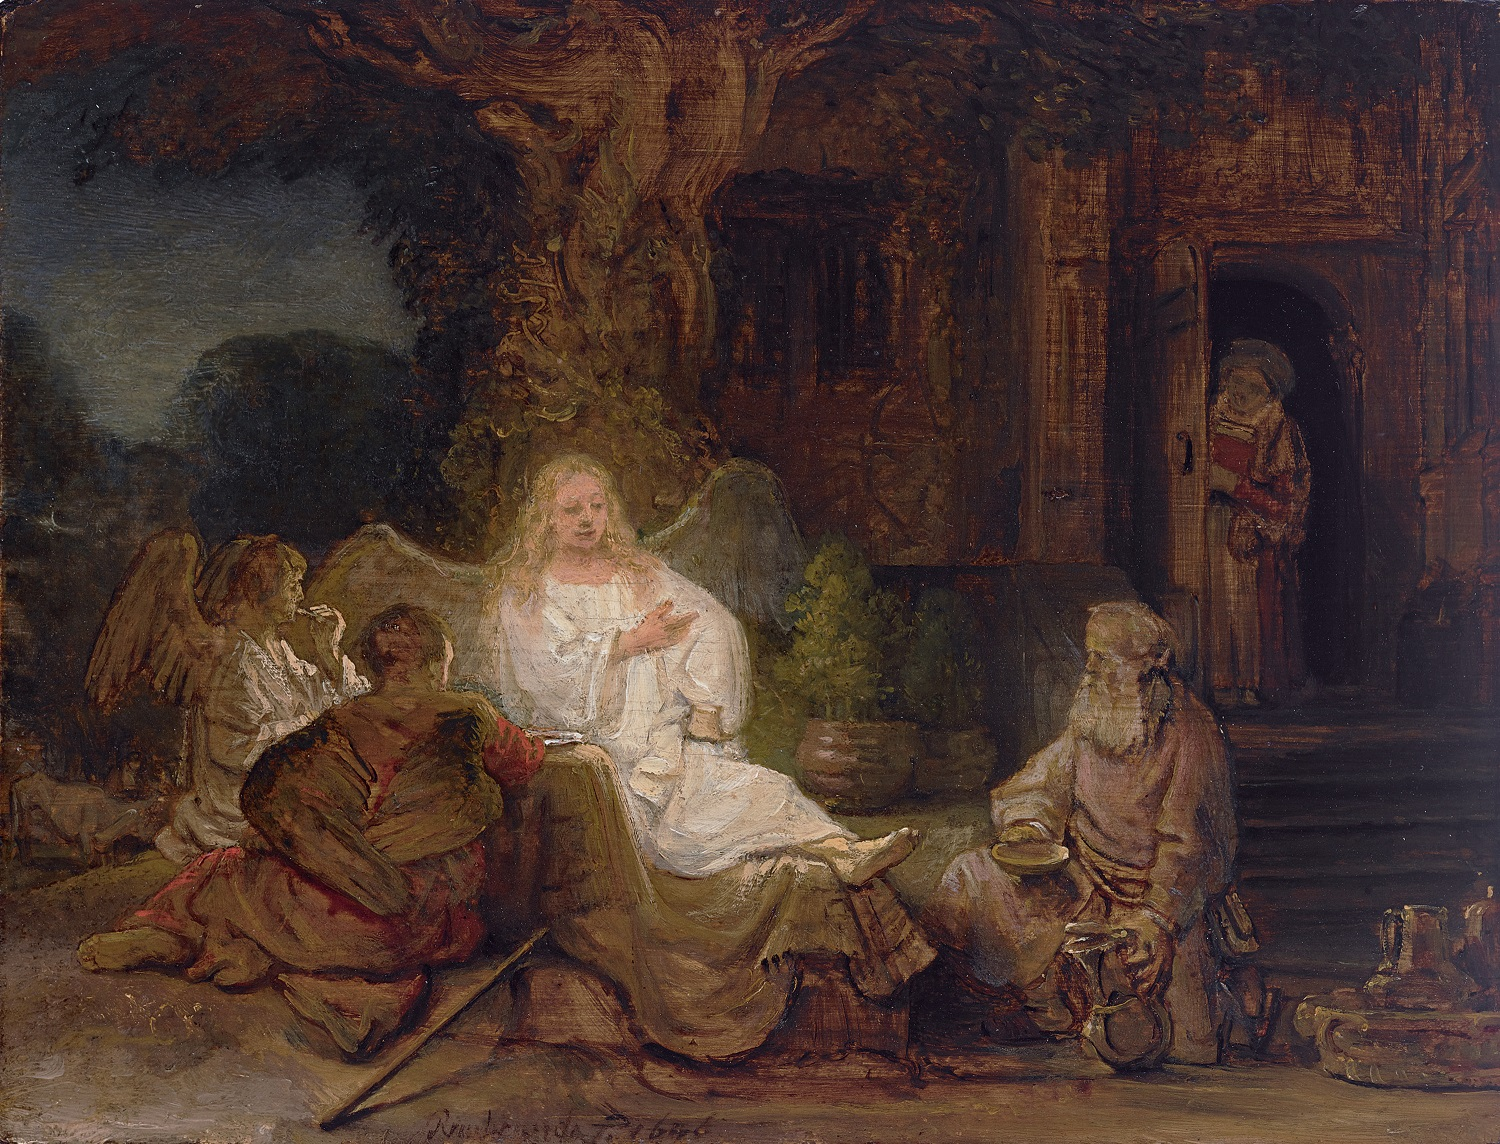 Sotheby's To Offer Rare Rembrandt Biblical Scene For $30 Million